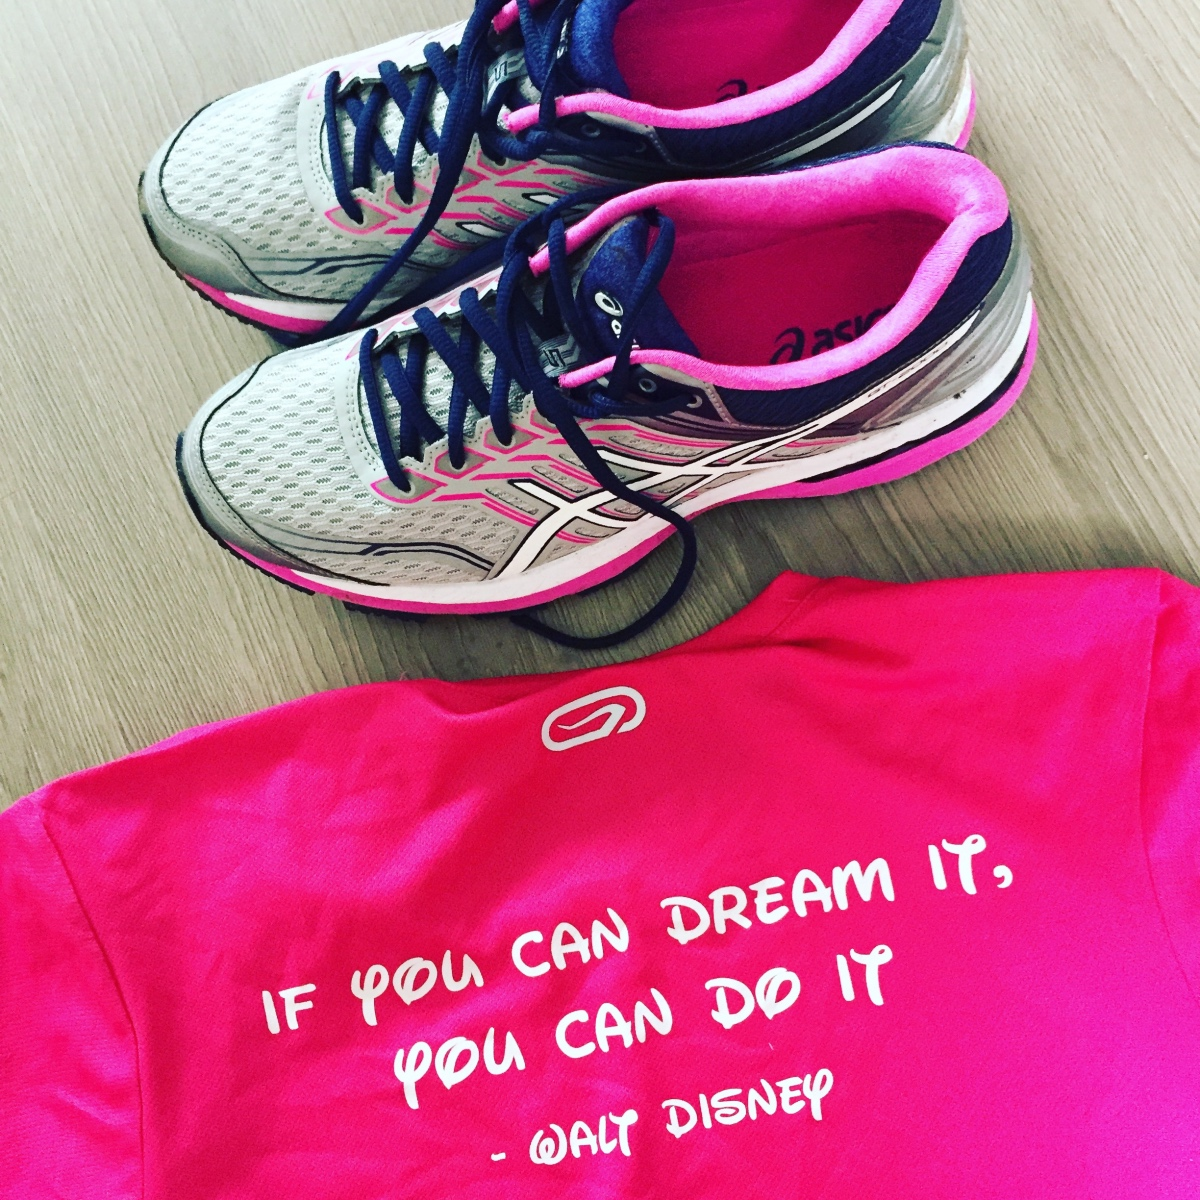 """Hardloop motto """"if you can dream it, you can do it"""" - Walt Disney"""